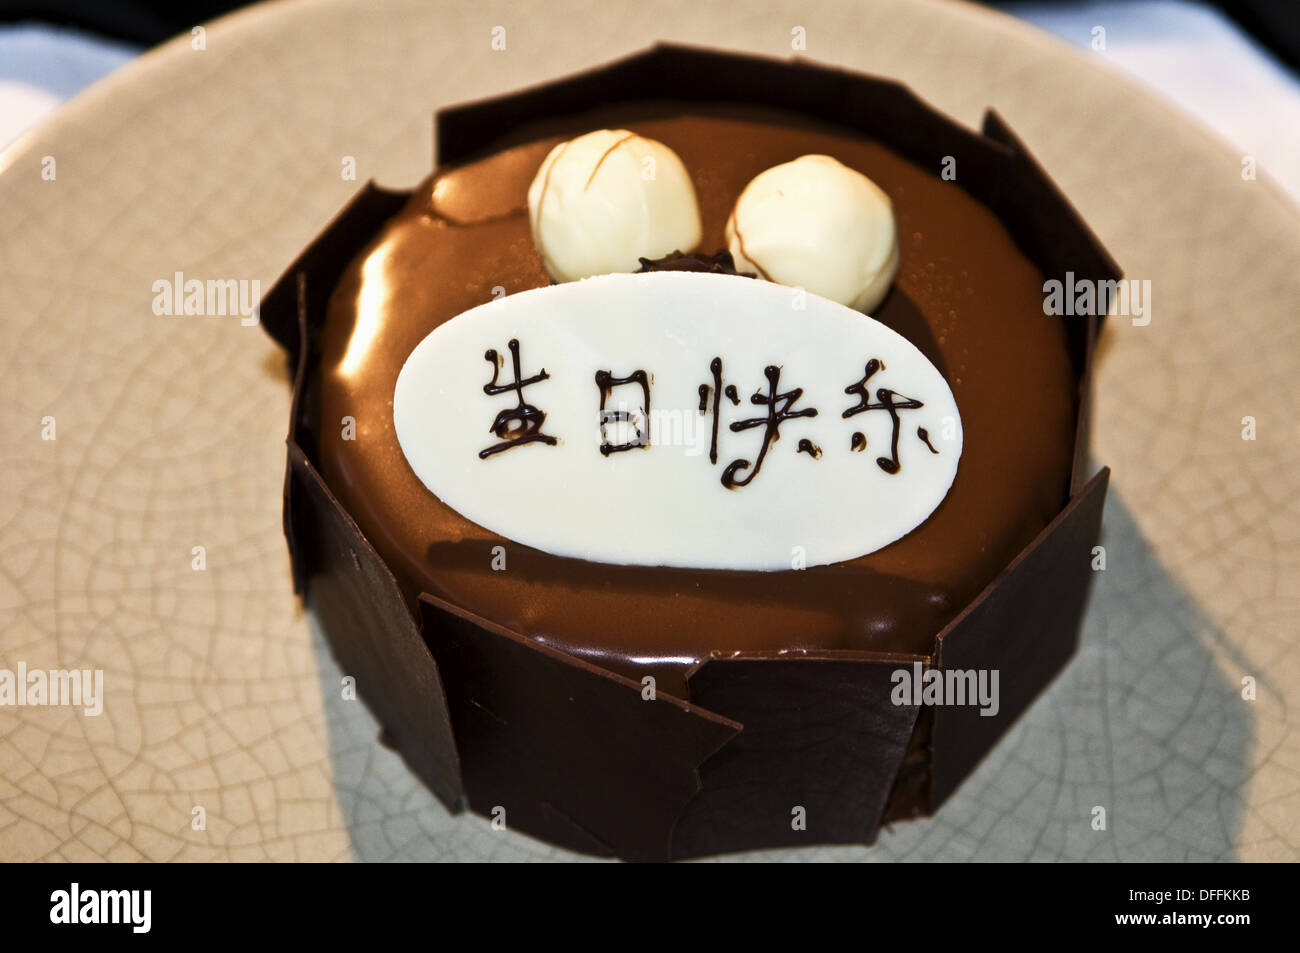 Tasty Birthday Cake With A Chinese Blessing On It